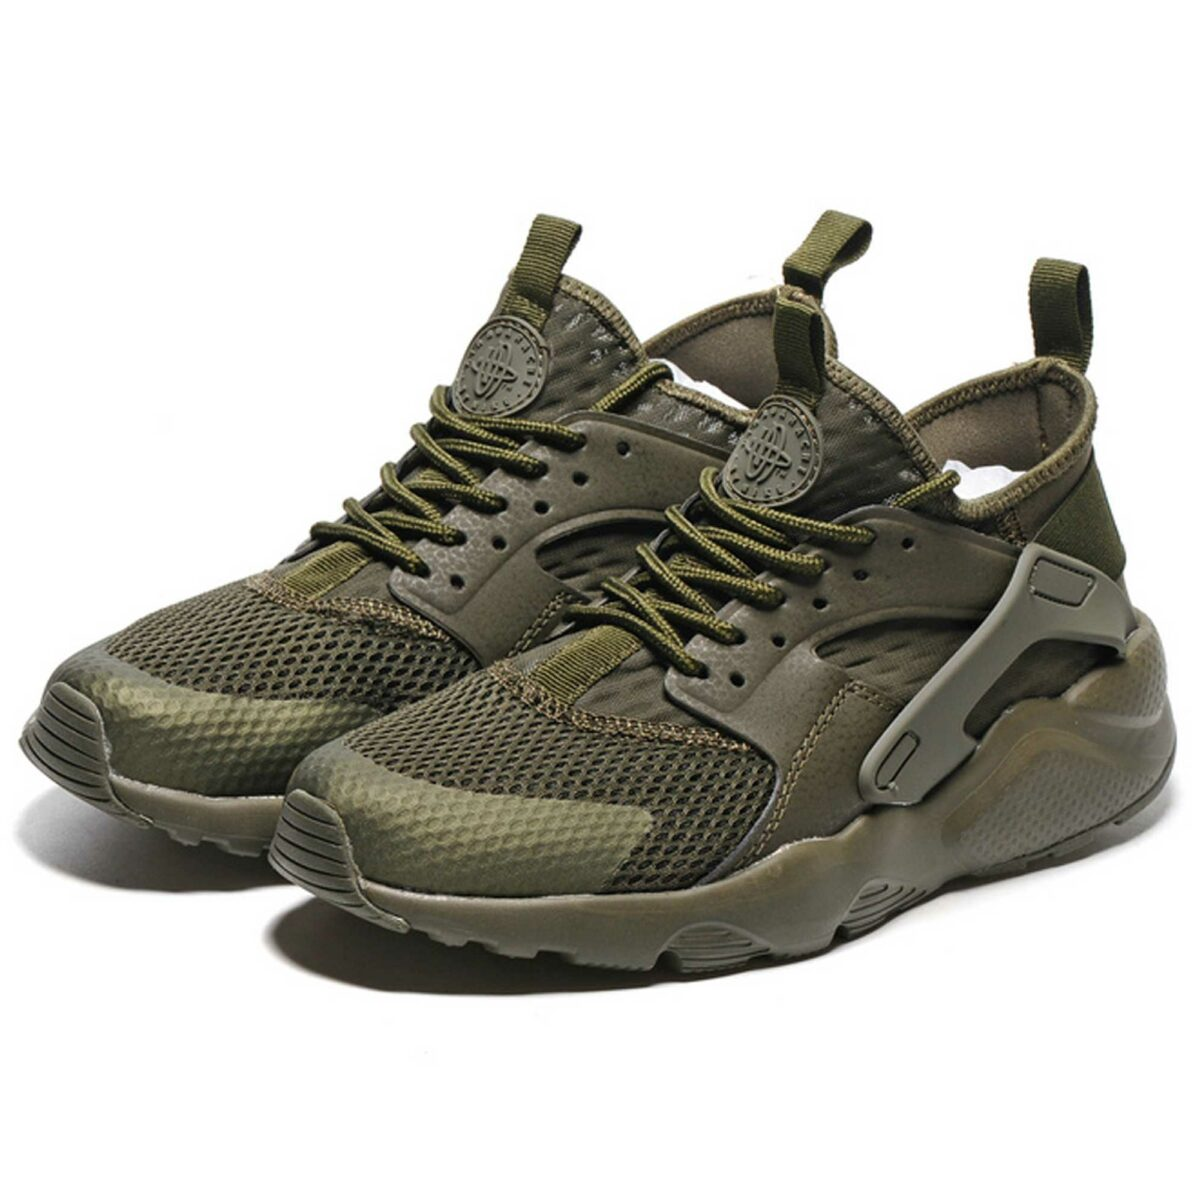 nike air huarache run ultra br olive 833147_200 купить